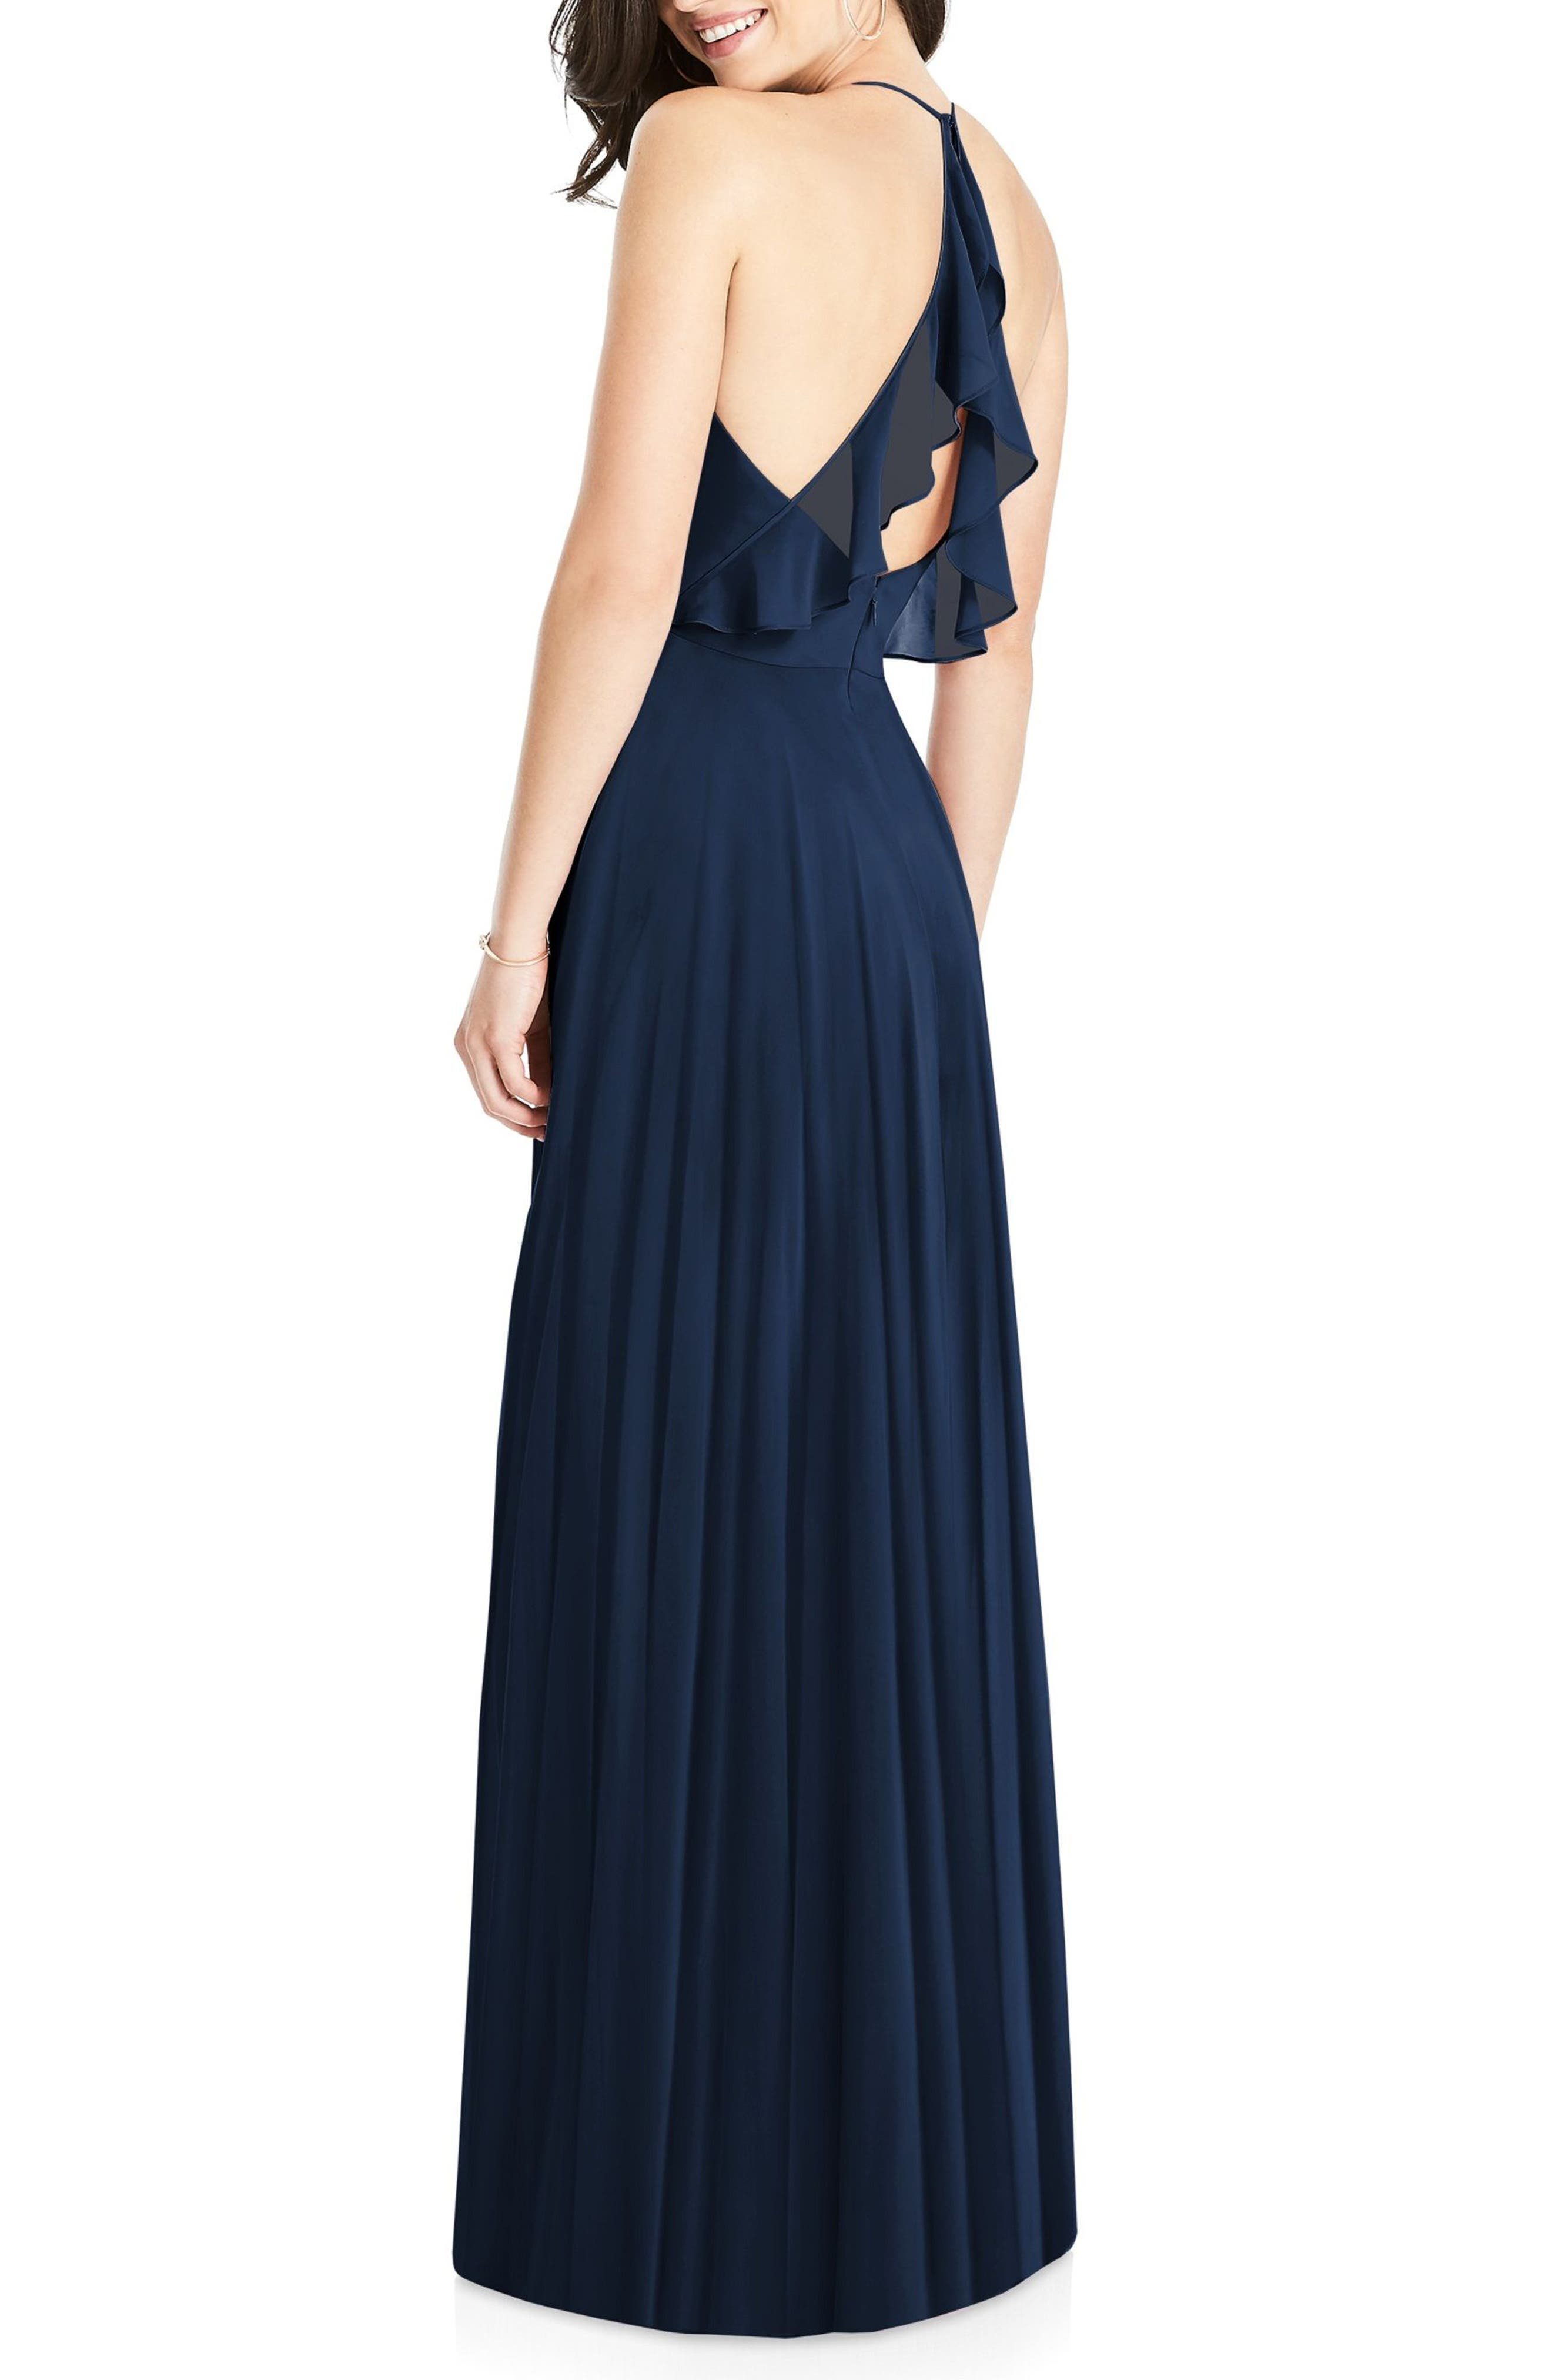 DESSY COLLECTION, Ruffle Back Chiffon Gown, Alternate thumbnail 2, color, MIDNIGHT